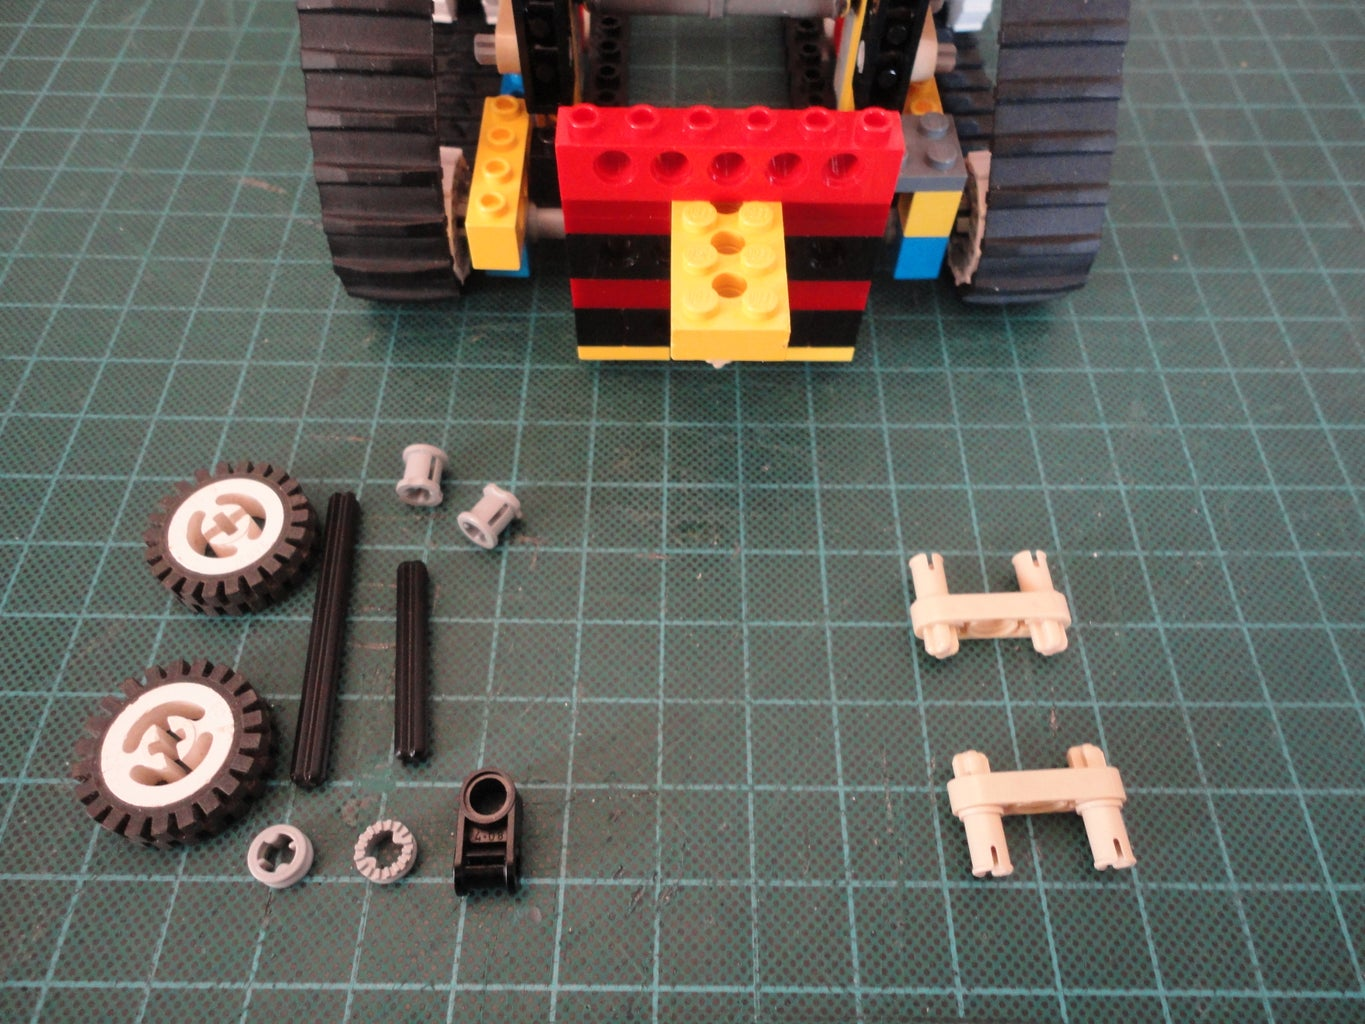 Battery Compartment and Castor